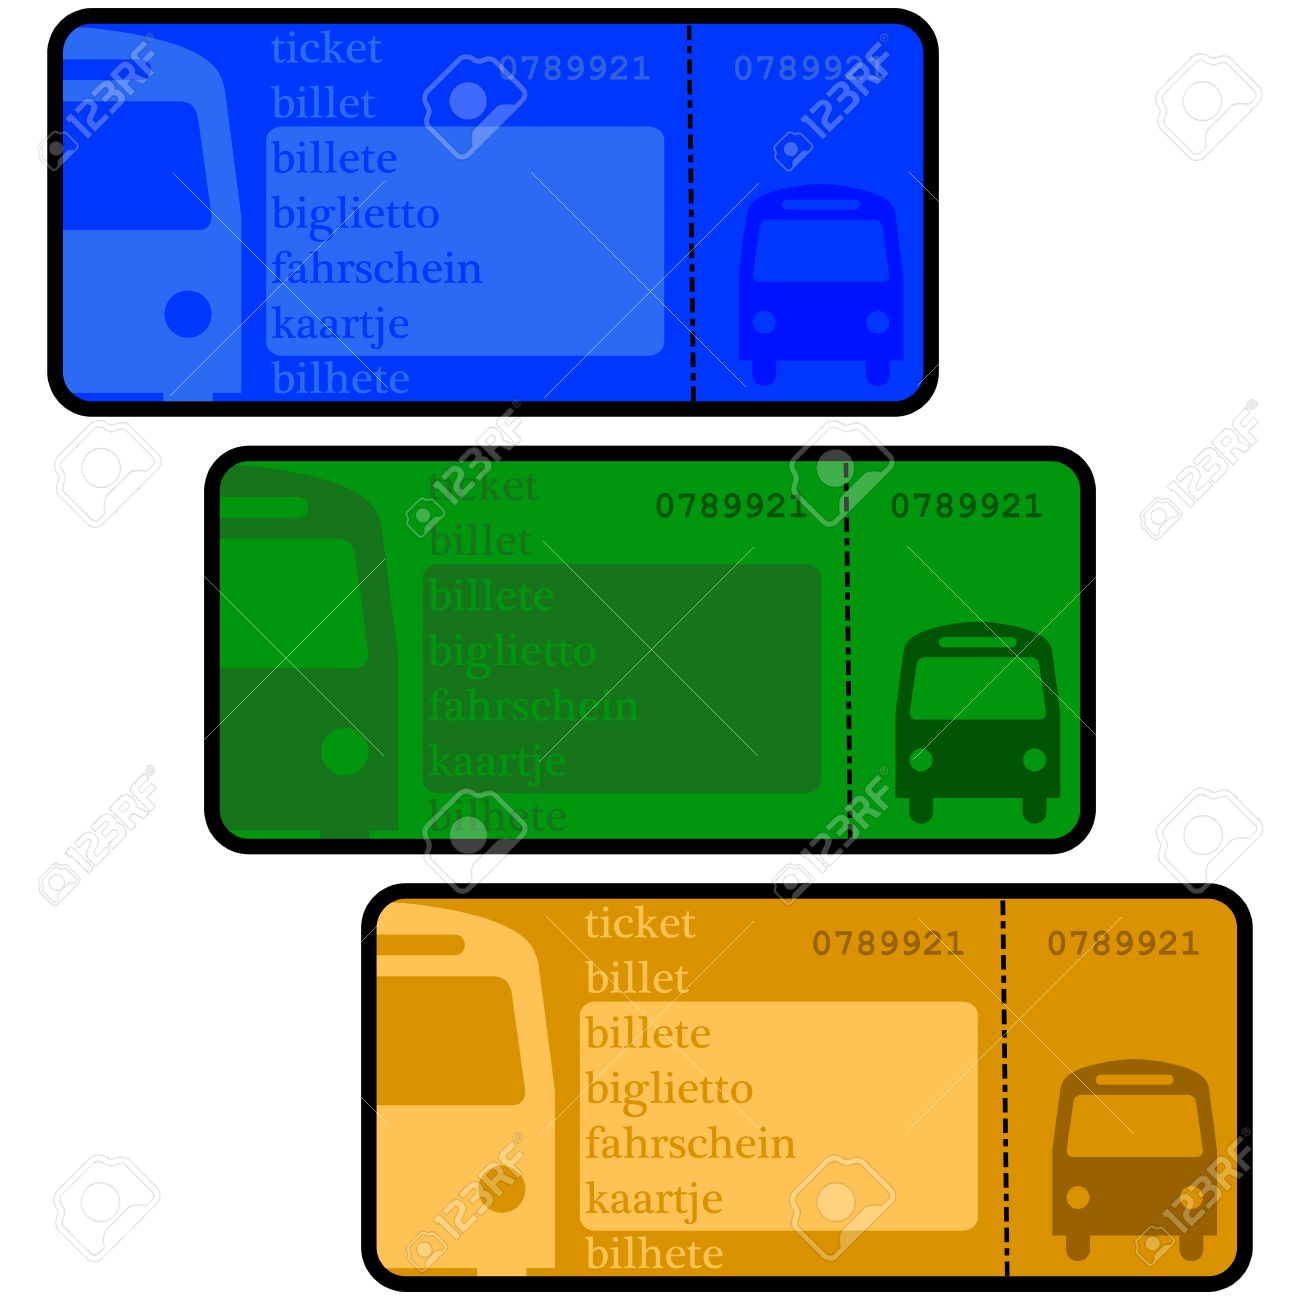 Cartoon Illustration Showing Bus Ticket Templates In Different – Bus Pass Template